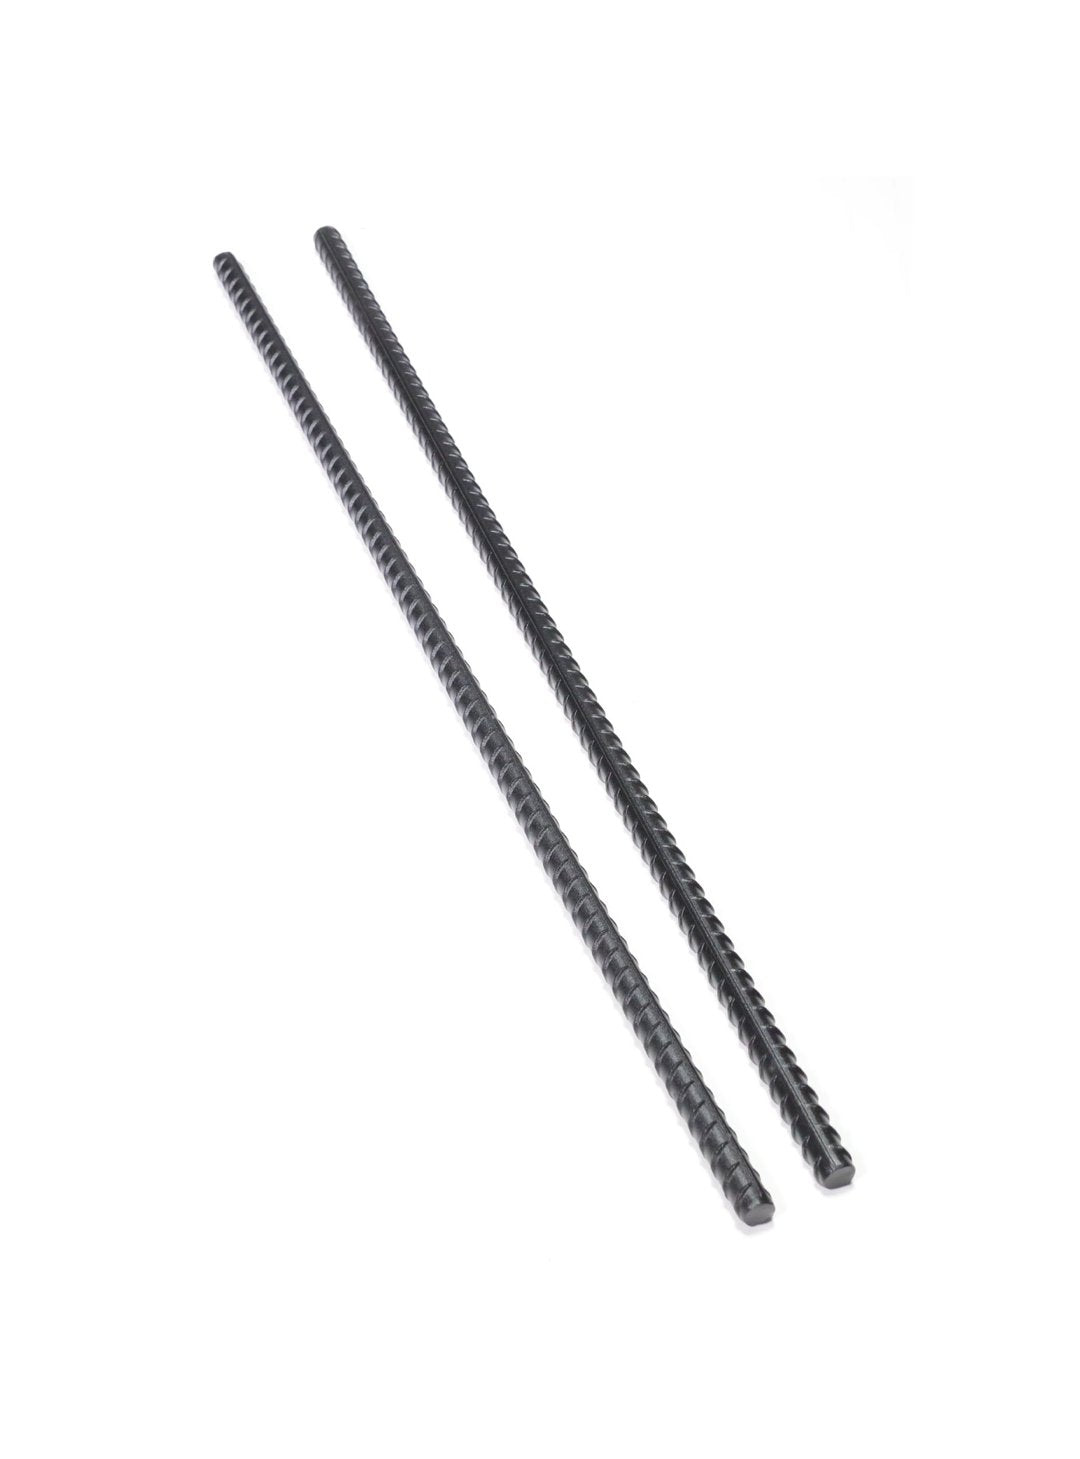 REPLACEMENT SET OF 2 STEEL HANGING RODS